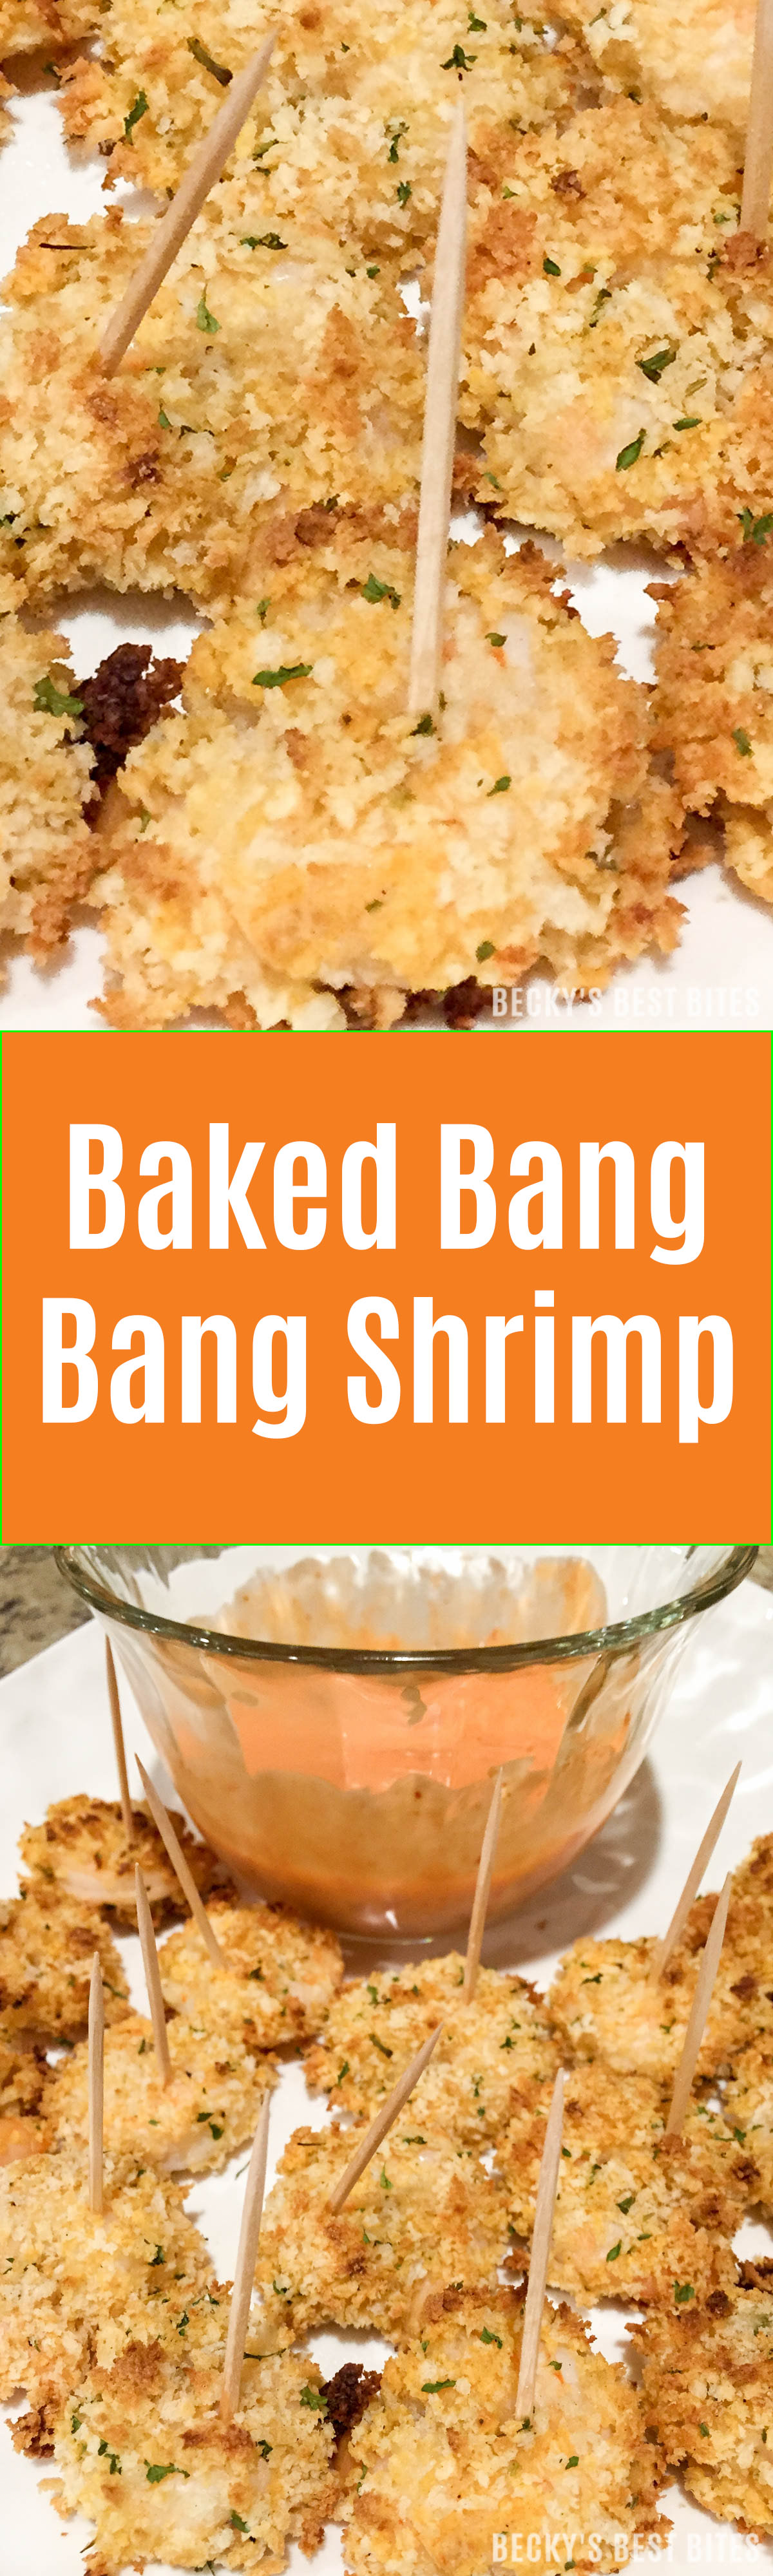 Baked Bang Bang Shrimp is a healthier version of the popular restaurant appetizer. Try this spicy shrimp with a crispy panko breadcrumb crust appetizer recipe for your next game day spread! | beckysbestbites.com